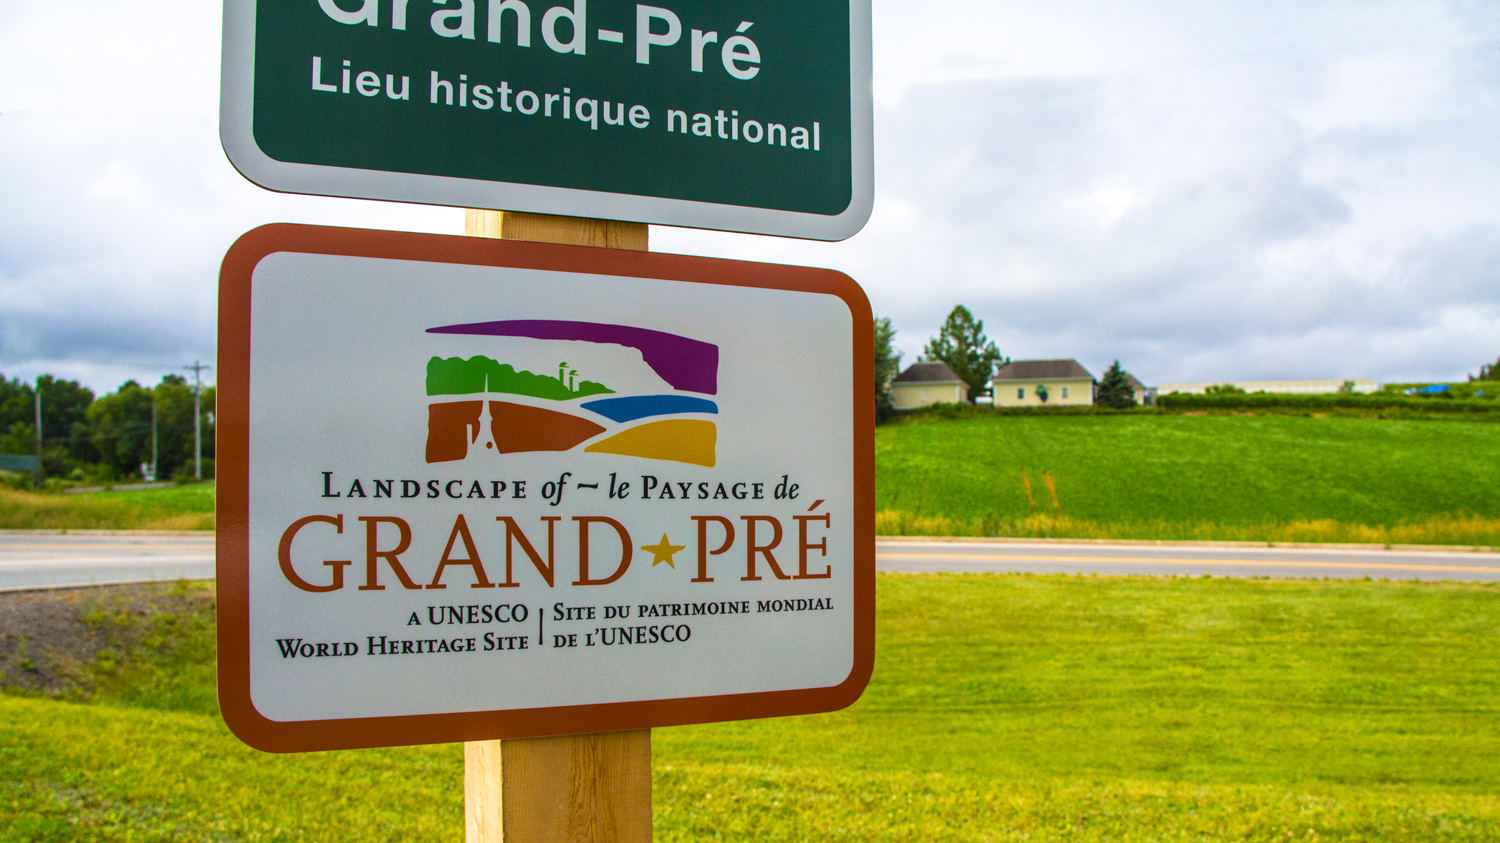 BILINGUAL WORDMARK Unique challenge: to create an efficient bilingual word mark. A star stands in for the hyphen used only in French, while also symbolizing the significant Acadian heritage of Grand Pré.